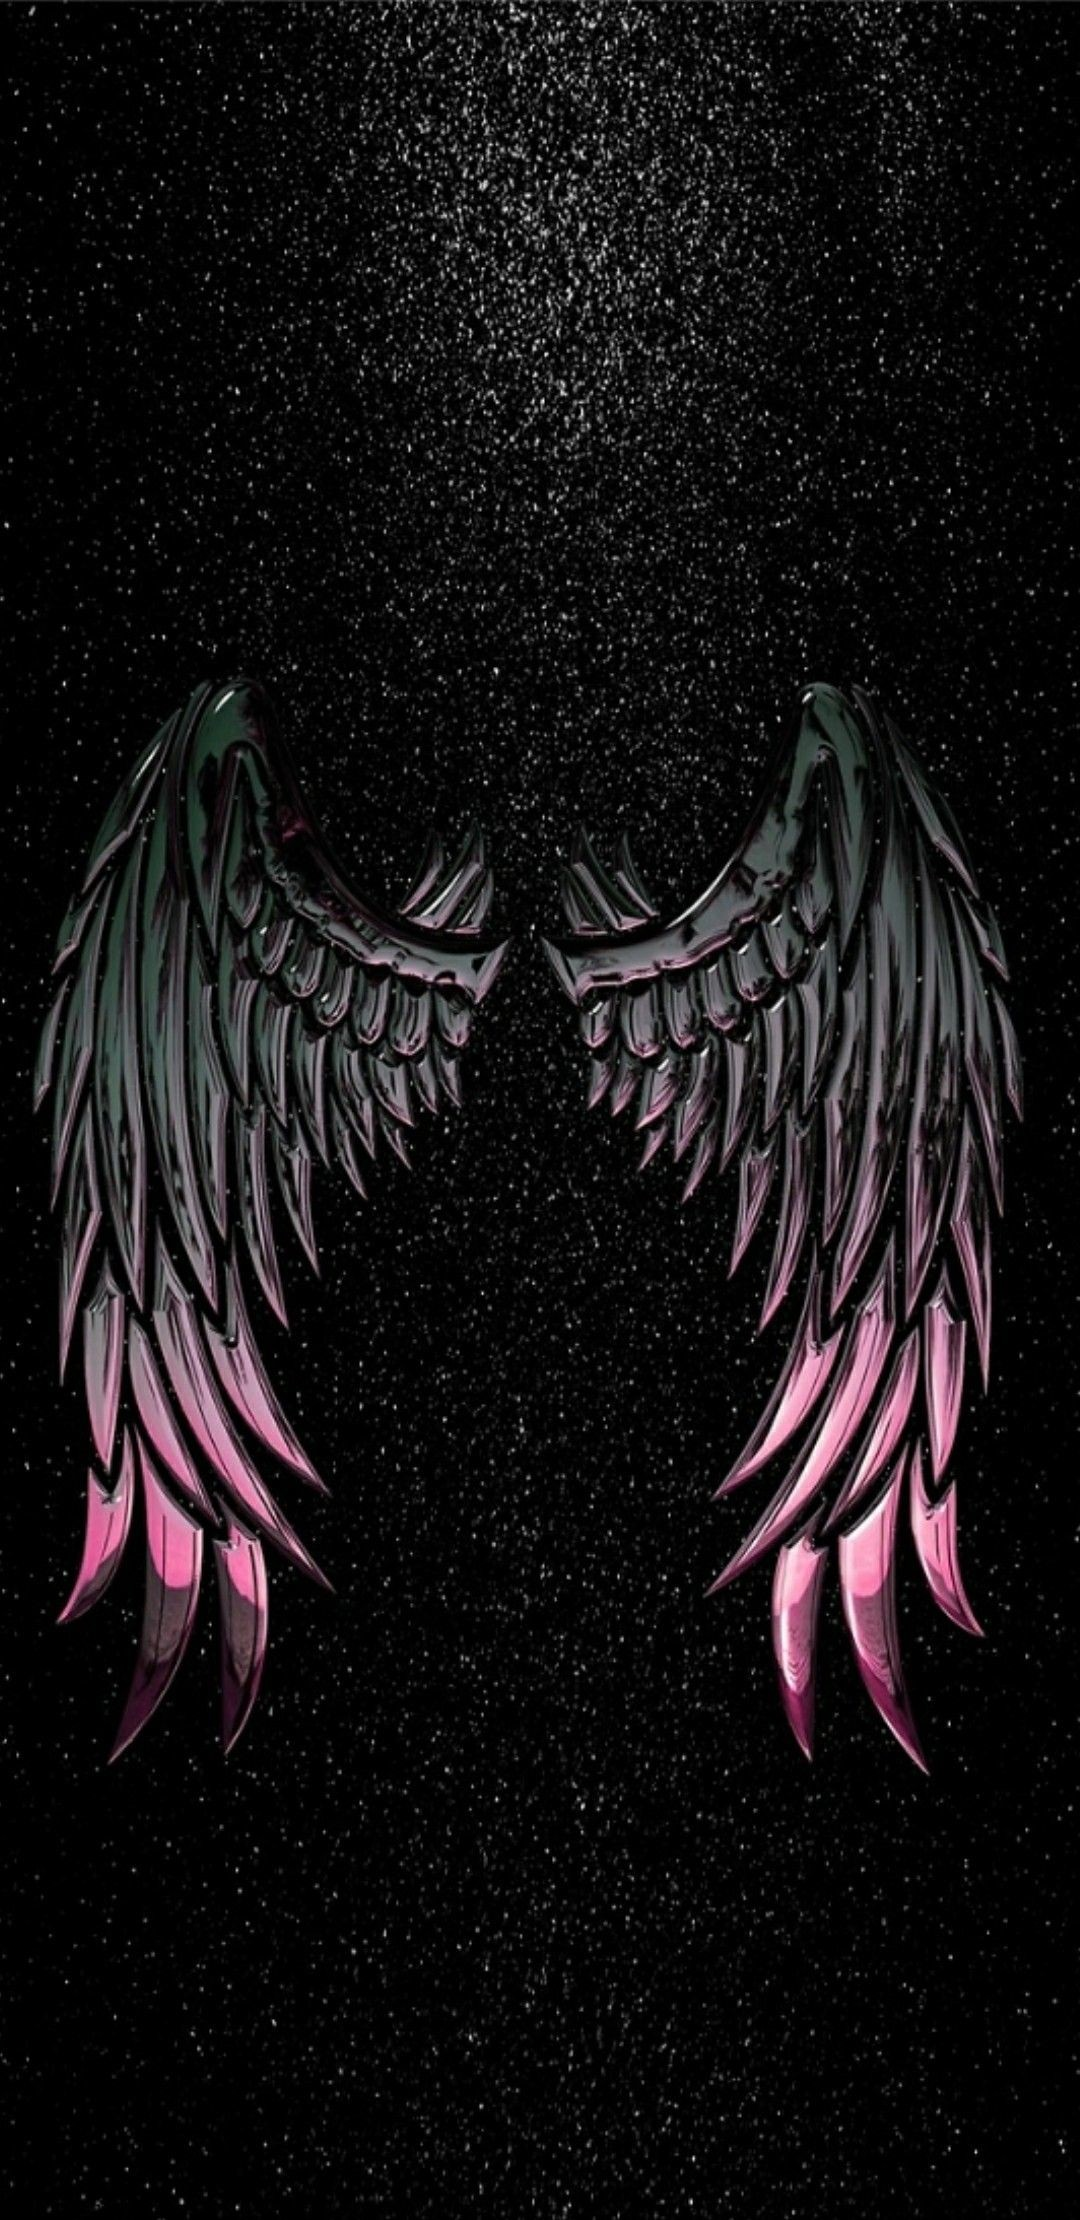 1080x2220 Tattoo on I want on my back Cool Wallpaper, Iphone Wallpaper, Wings  Wallpaper,